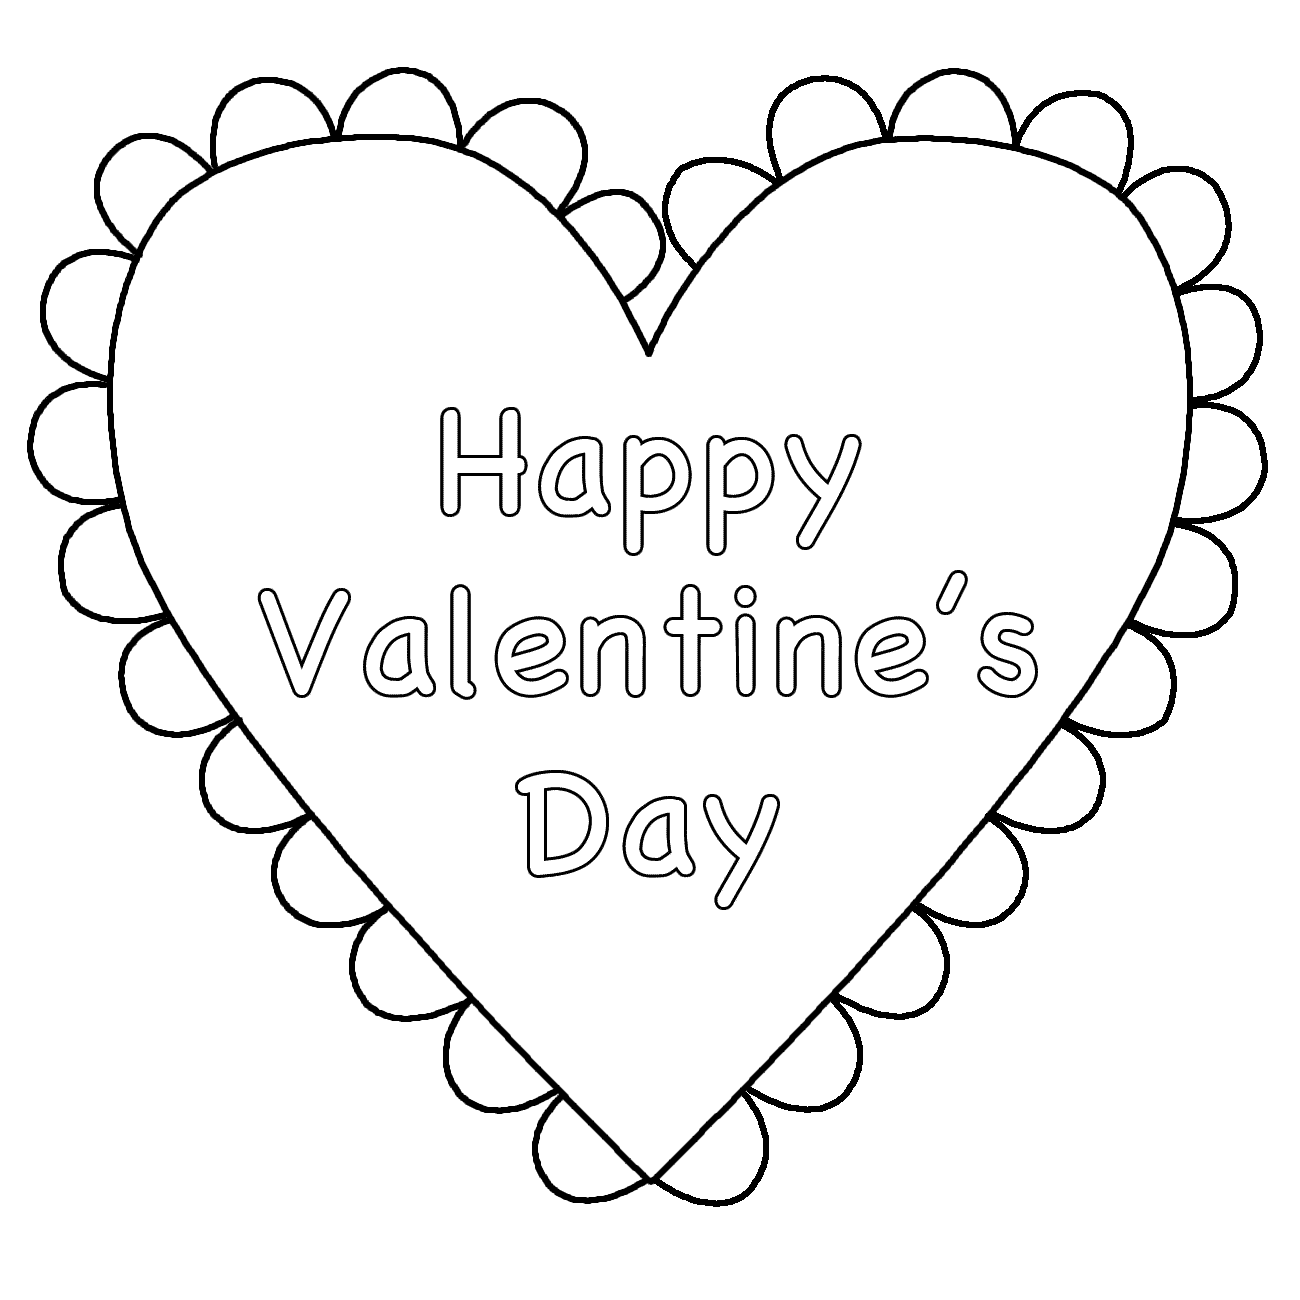 Free valentines day coloring pages to print - Paw Patrol Valentines Day Coloring Pages Valentines Day Coloring Pages Free Printable 18 Pictures Early